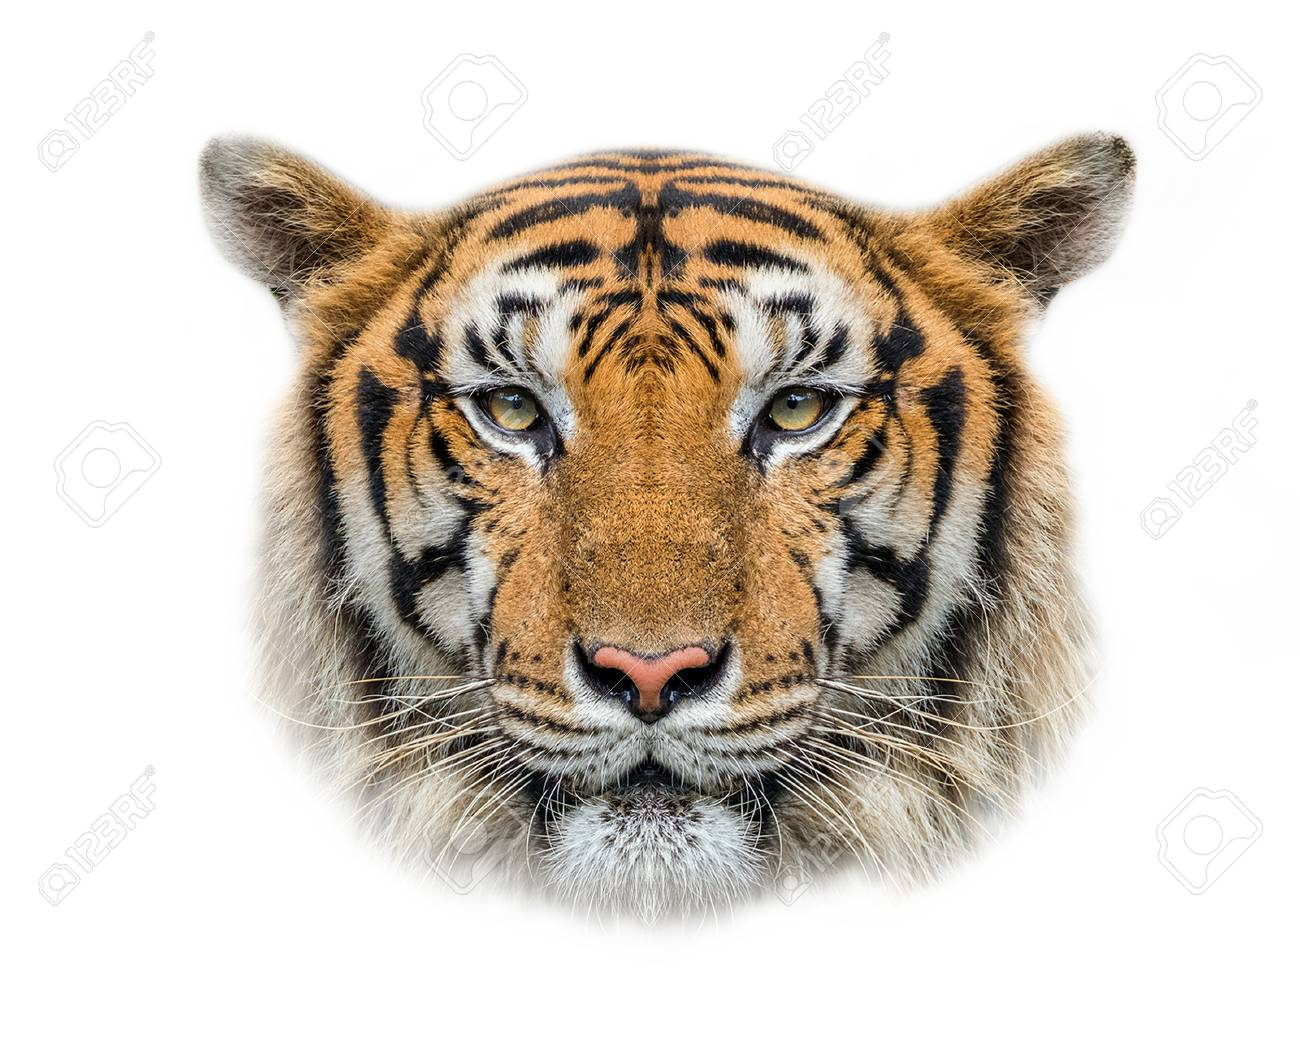 Tiger's face on a white background